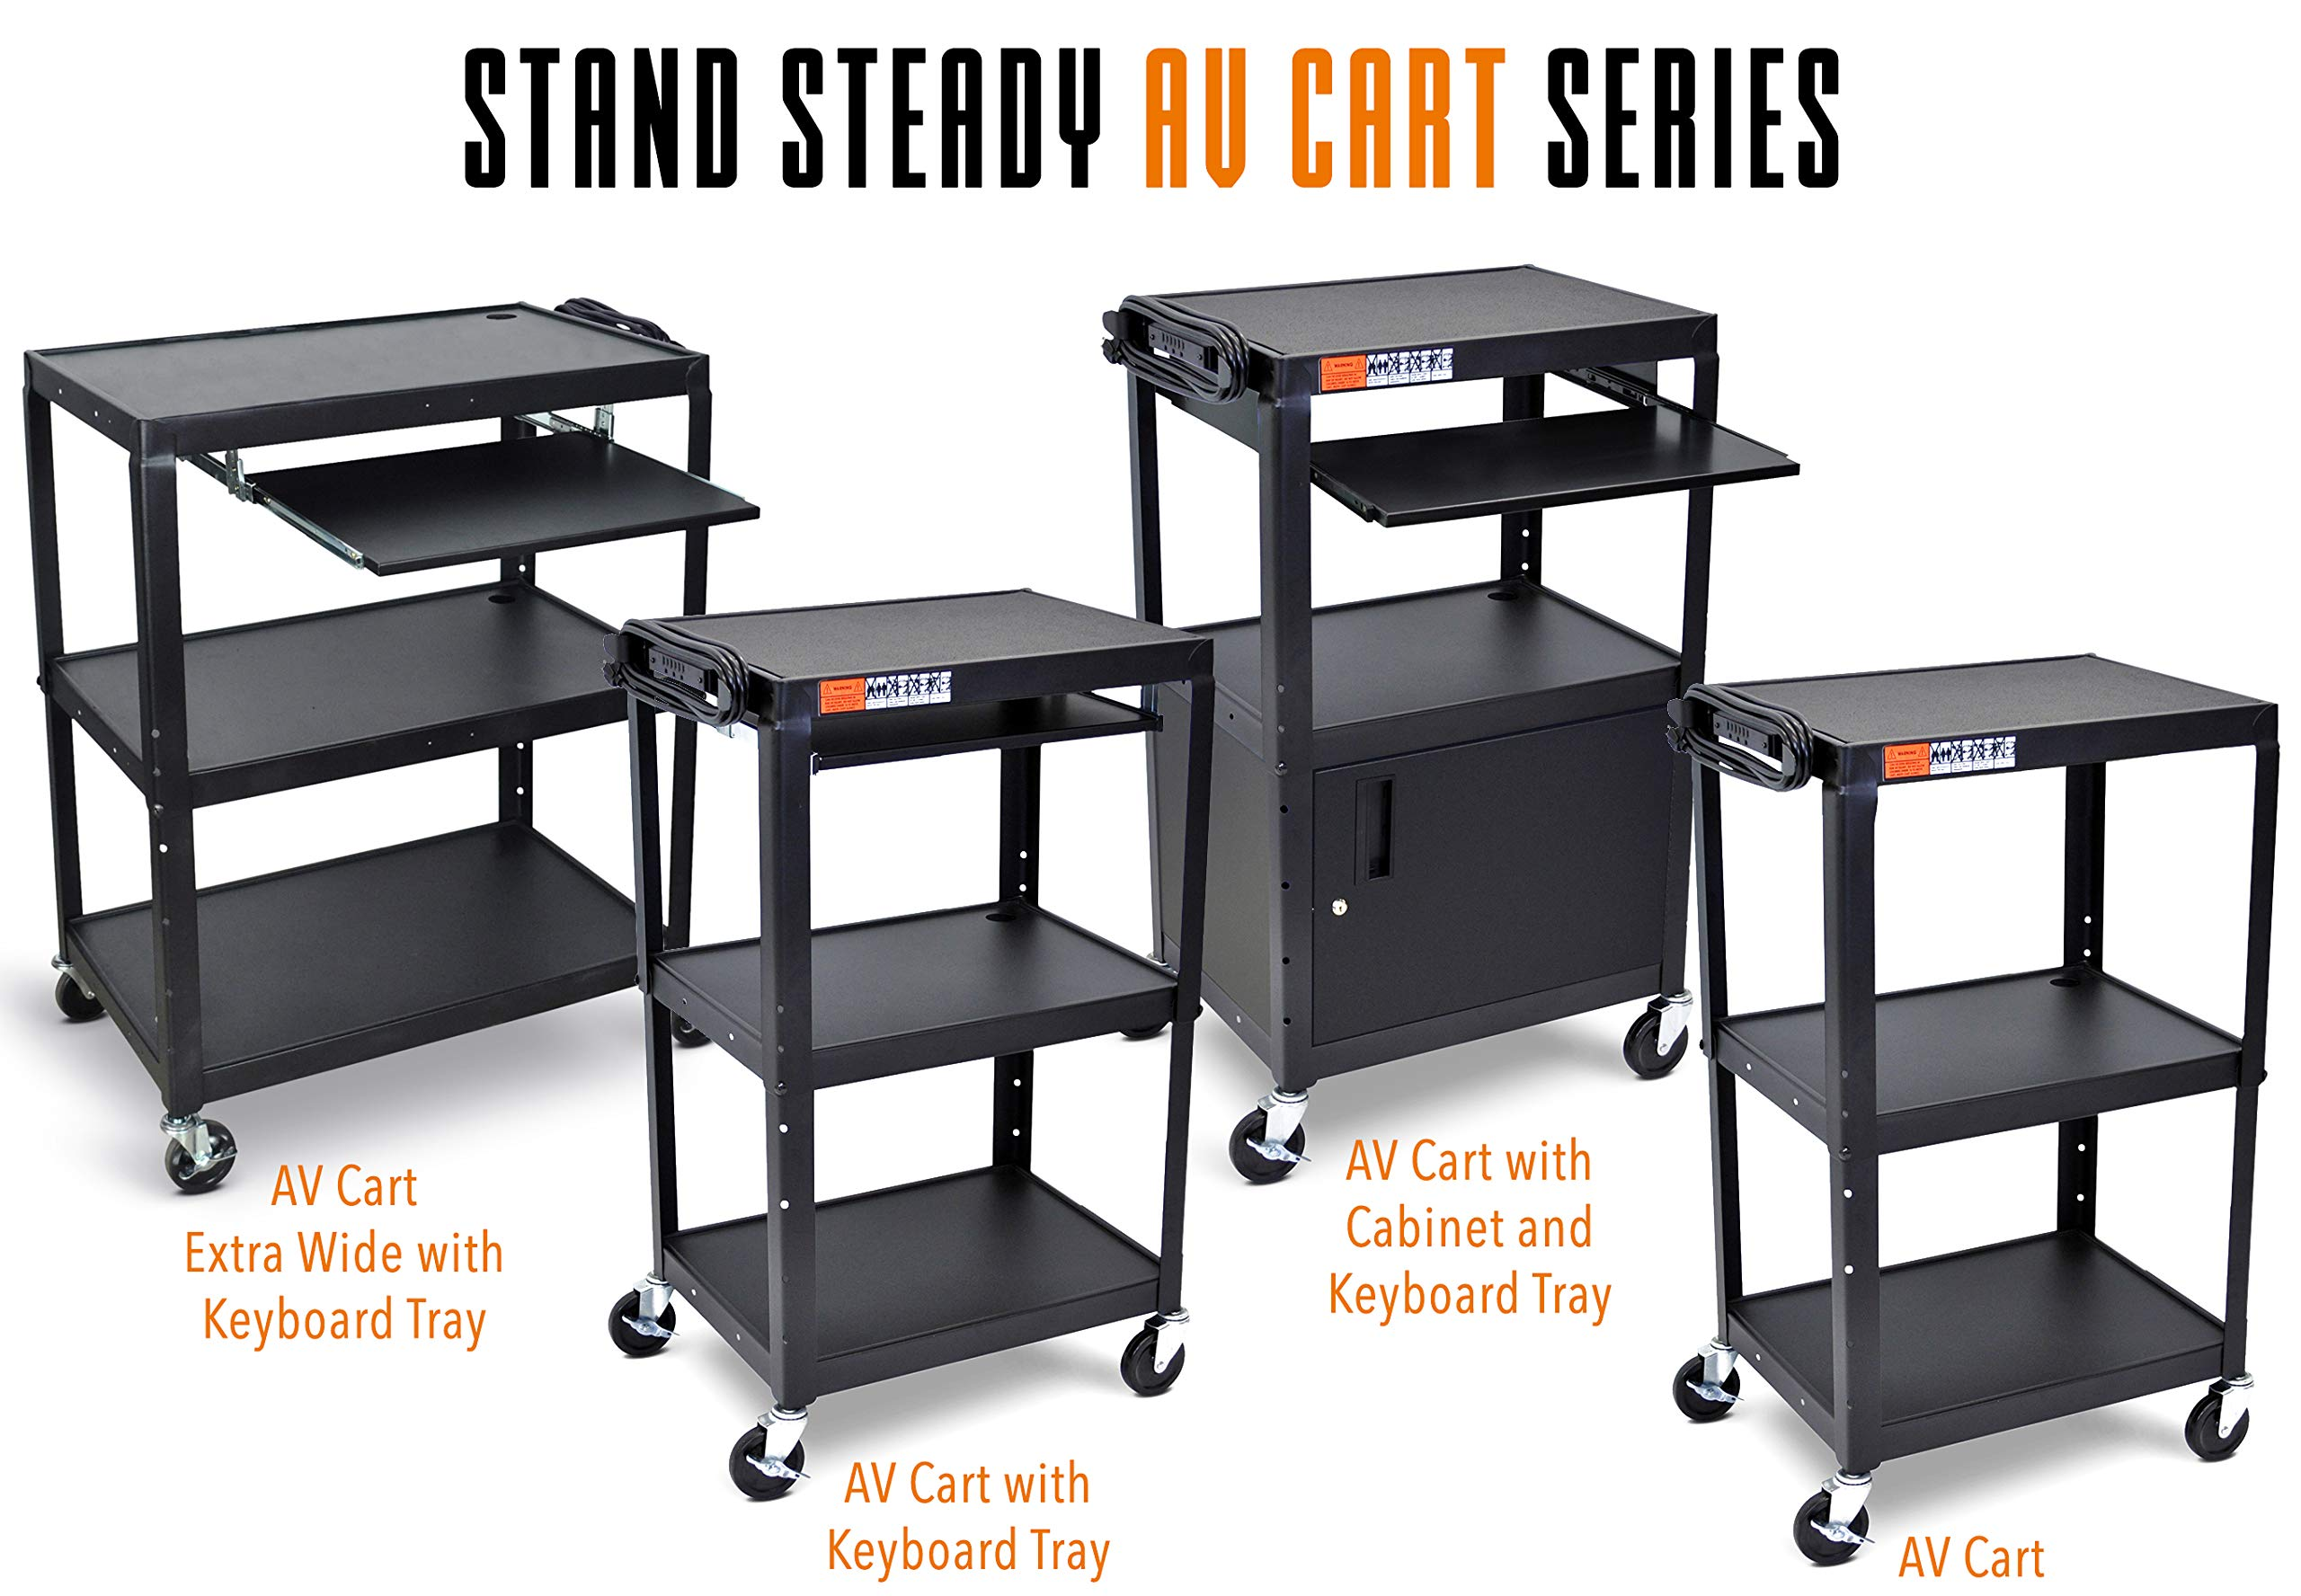 Line Leader Extra Wide AV Cart with Lockable Wheels -Adjustable Shelf Height- Includes Pullout Keyboard Tray and Cord Management! (42x32x20) (Extra Wide AV Cart - Black) by Stand Steady (Image #4)